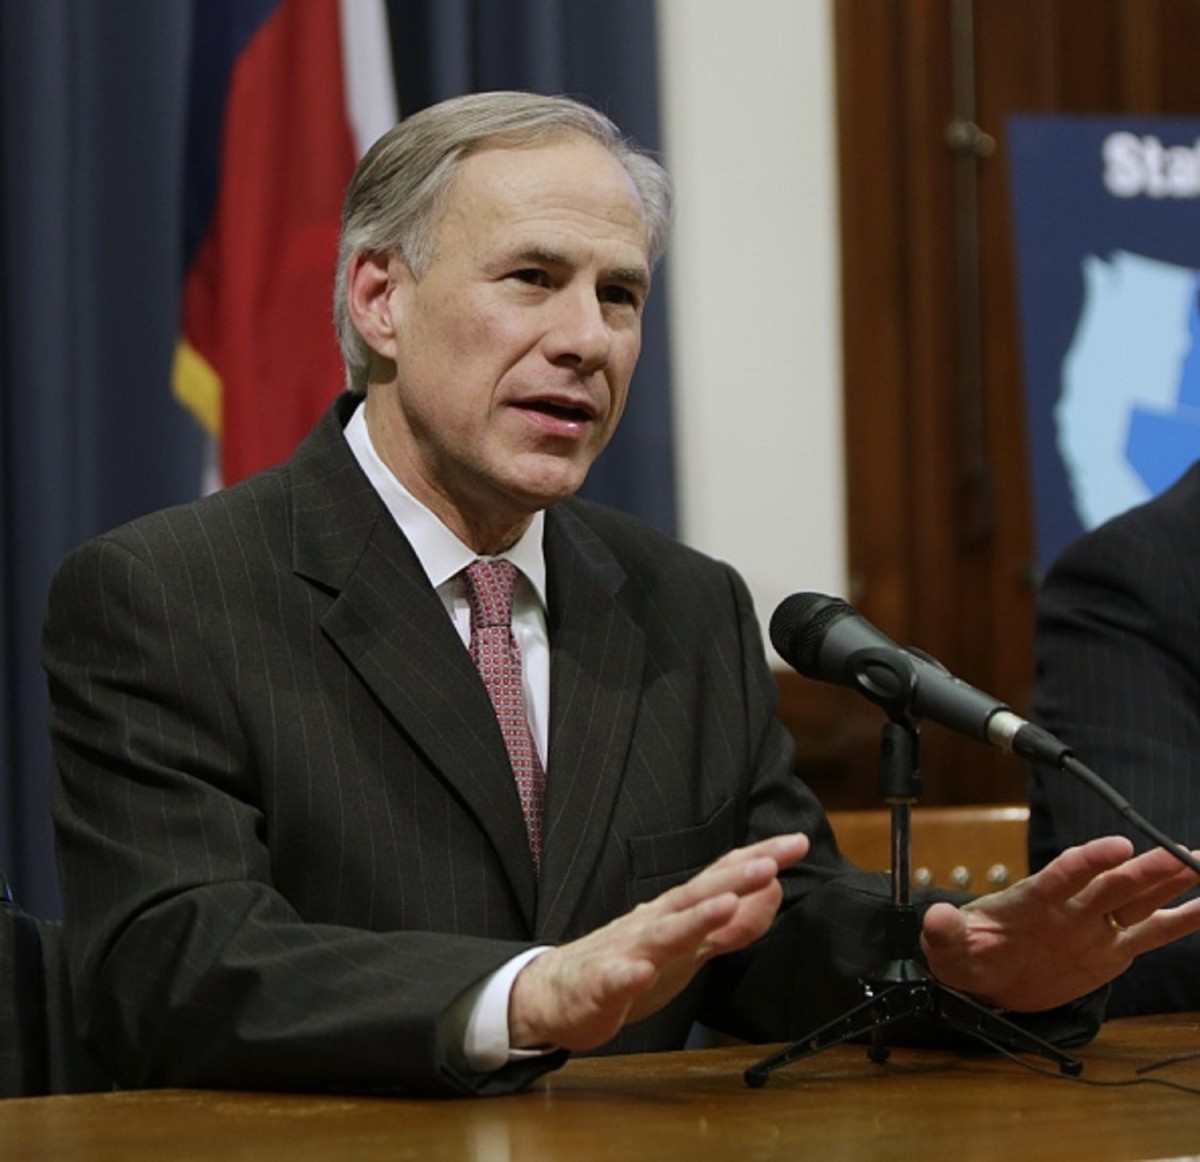 Greg Abbott overcame paralysis to become governor